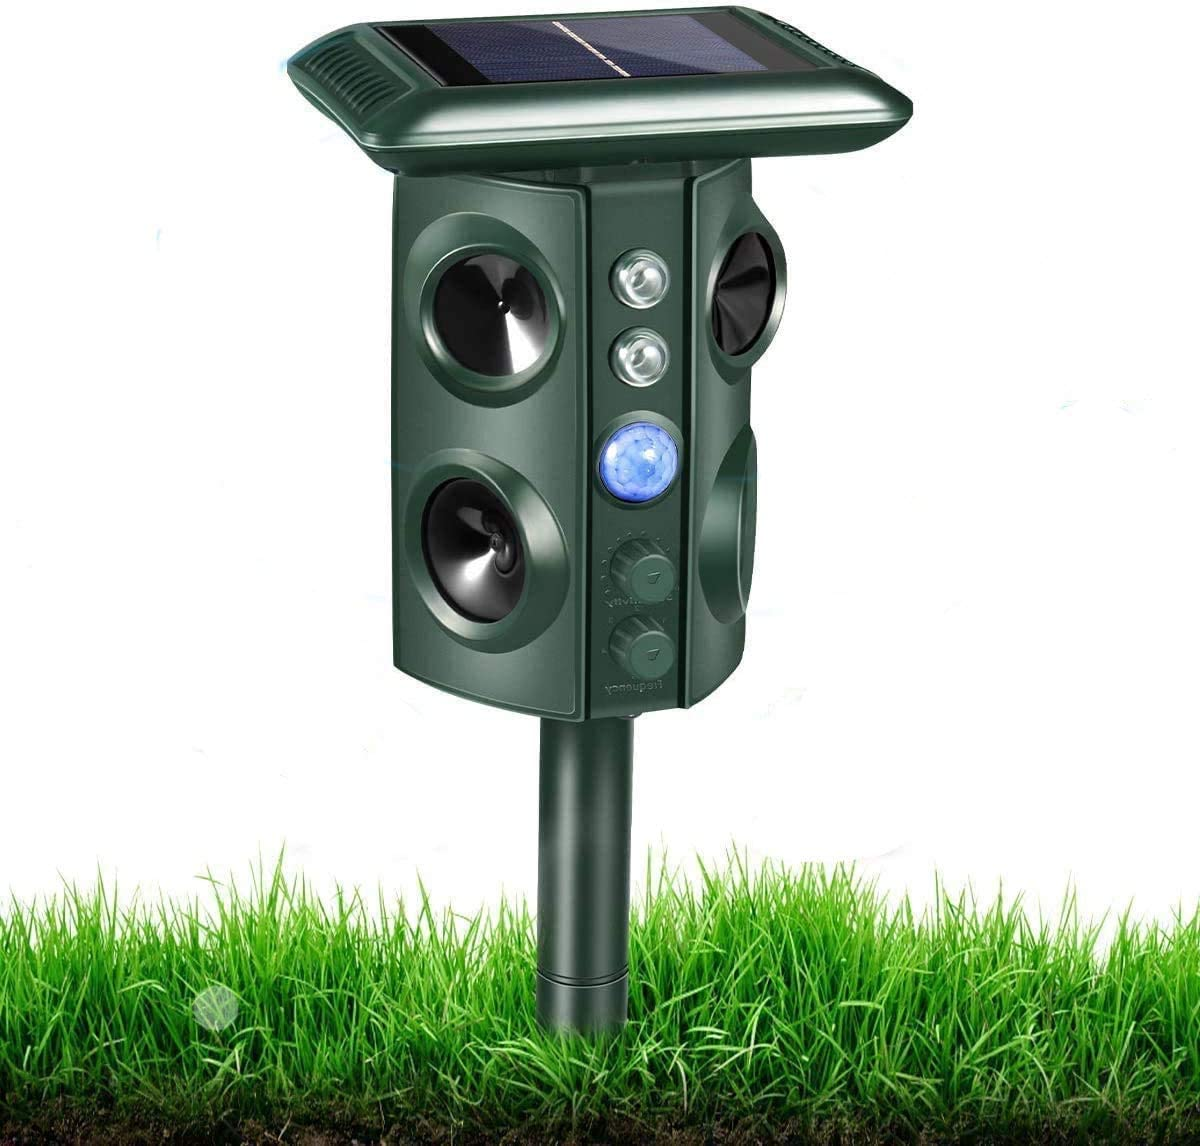 RIVENNA Ultrasonic Animal Chaser, Solar Animal Chaser, Motion Detector, Flashing Light and USB Charge, Outdoor Farm Garden Yard, Dog, Cat, Squirrel, Raccoon, Skunk, Rabbit, Mole, Deer, Birds